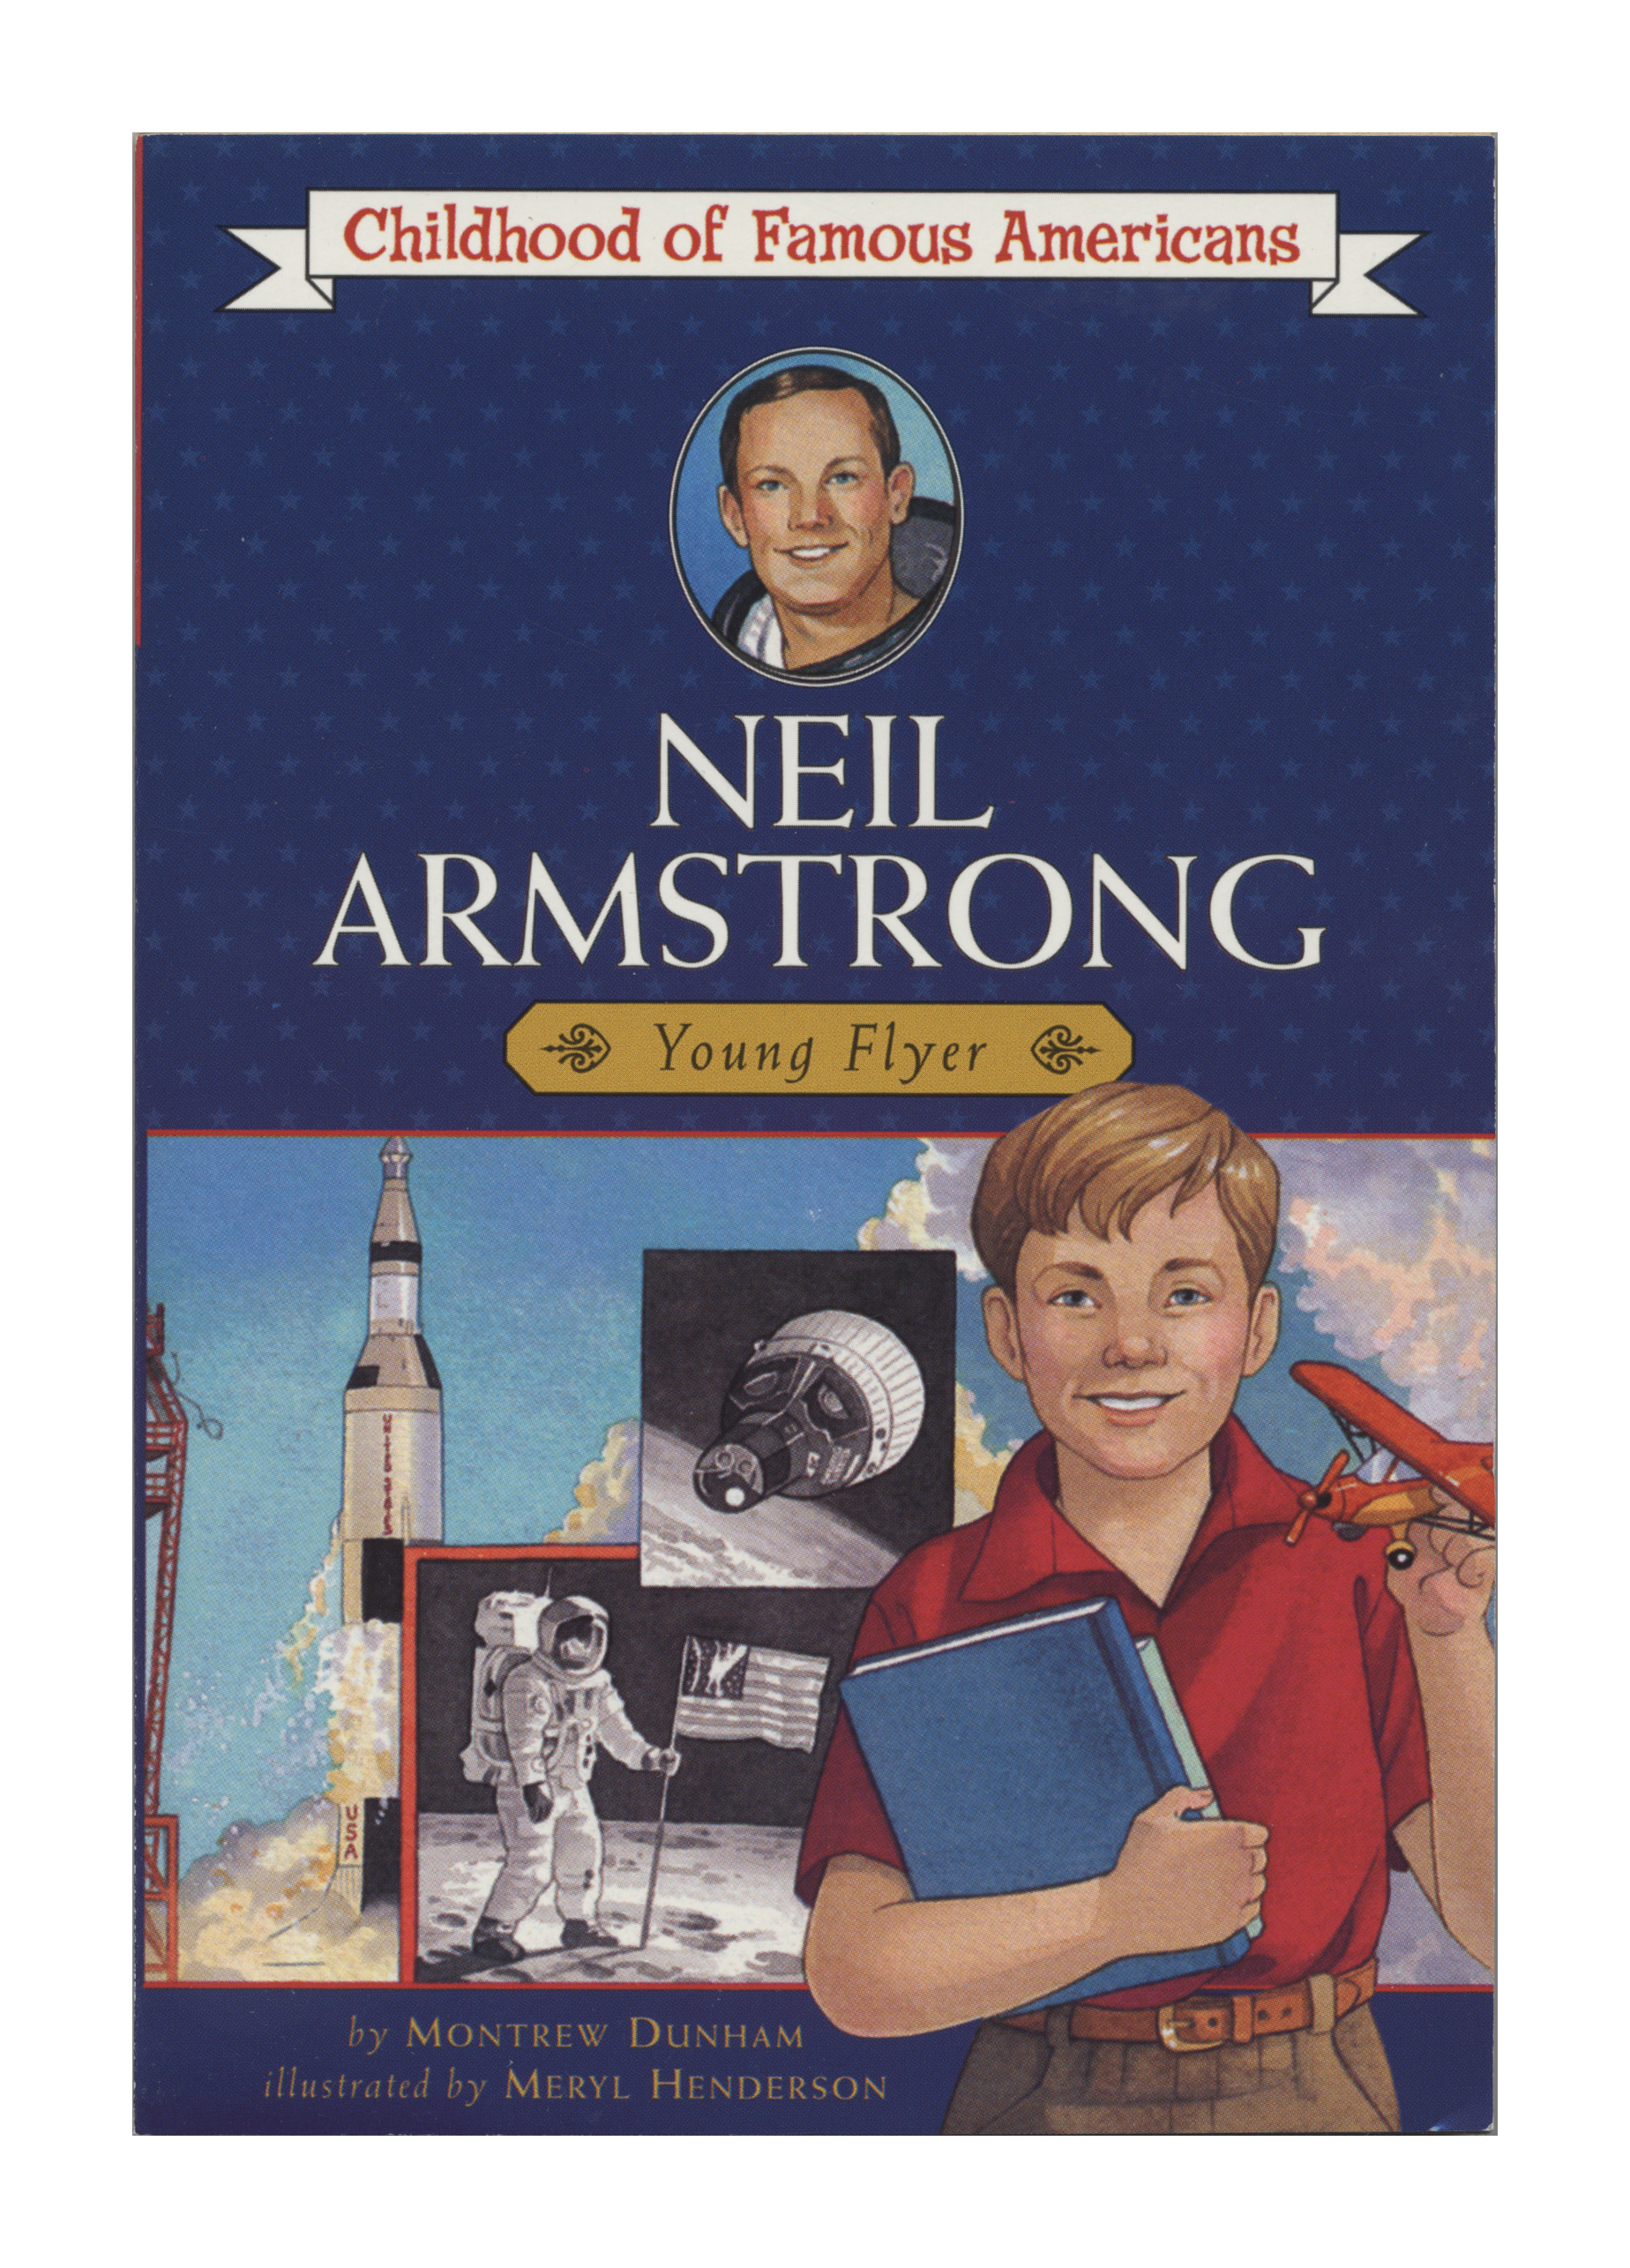 neil armstrong book covers - photo #12